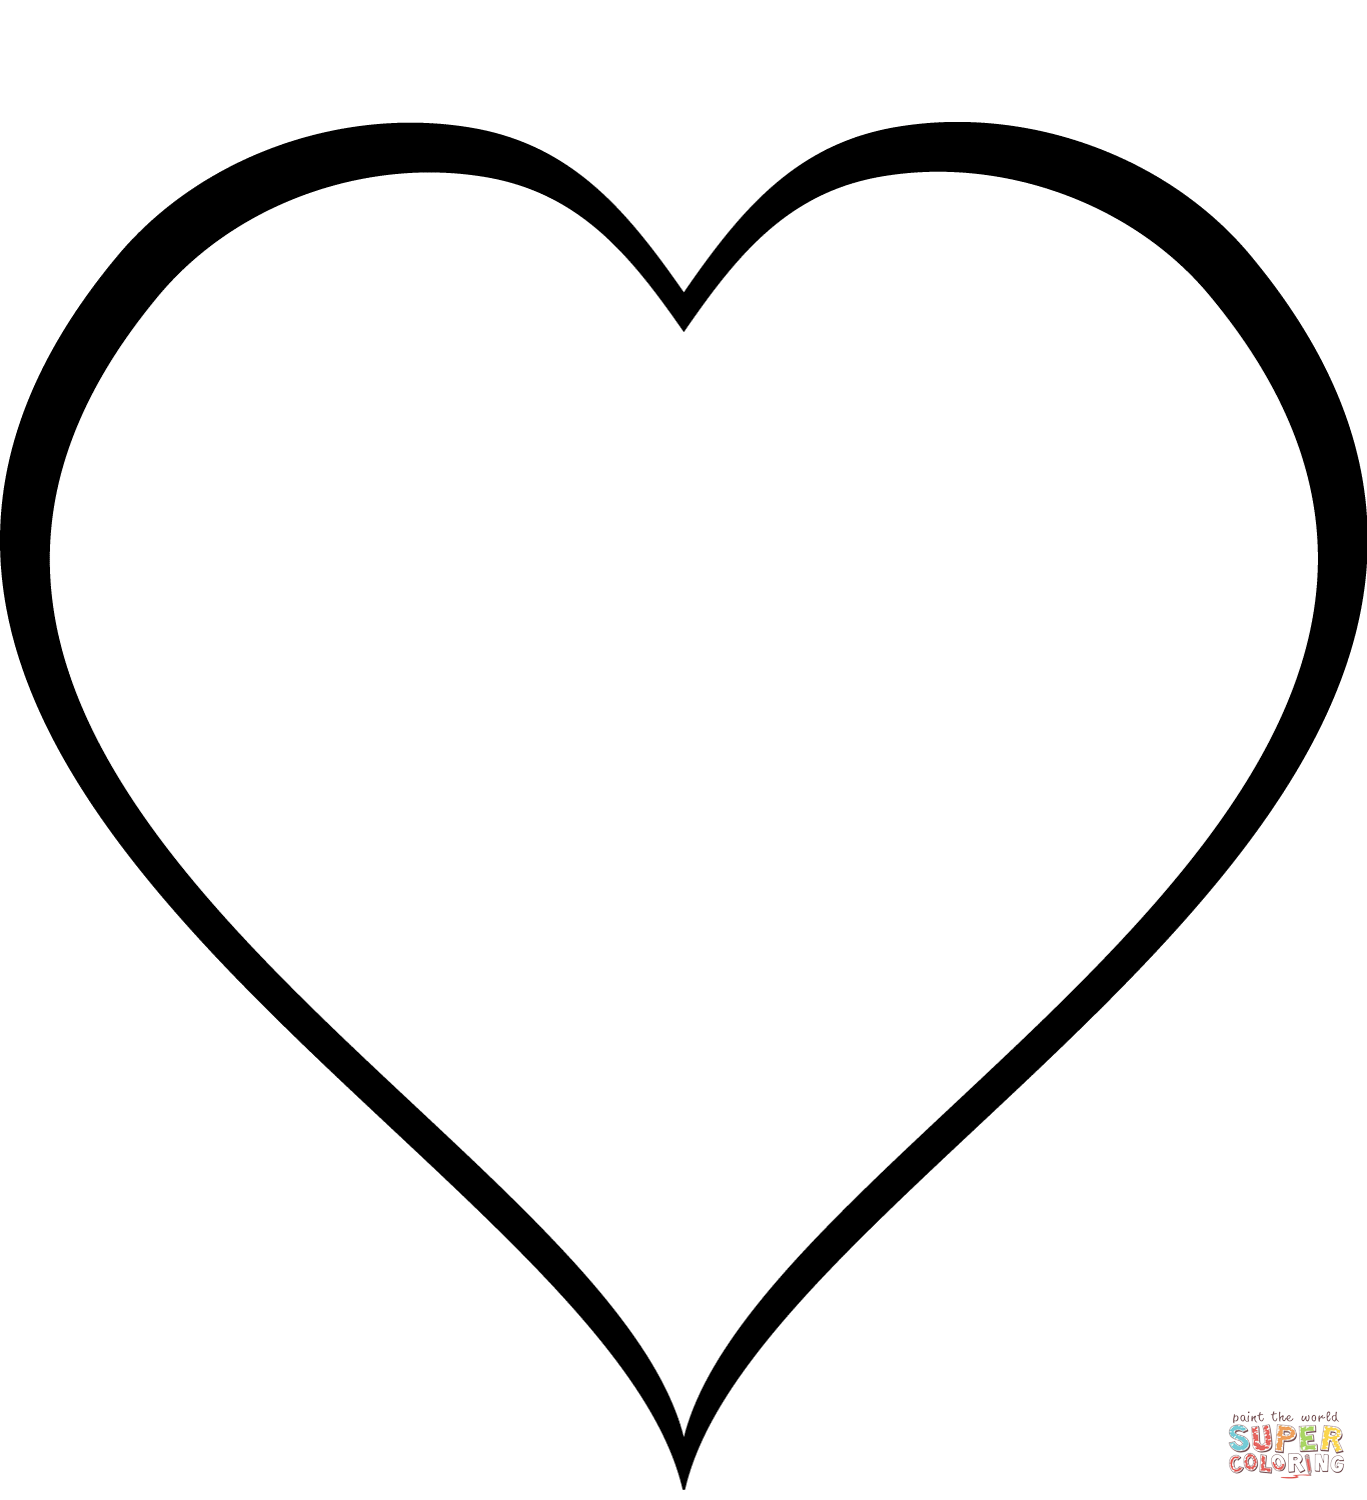 simple heart coloring pages easy heart coloring pages for kids stripe patterns heart coloring simple pages